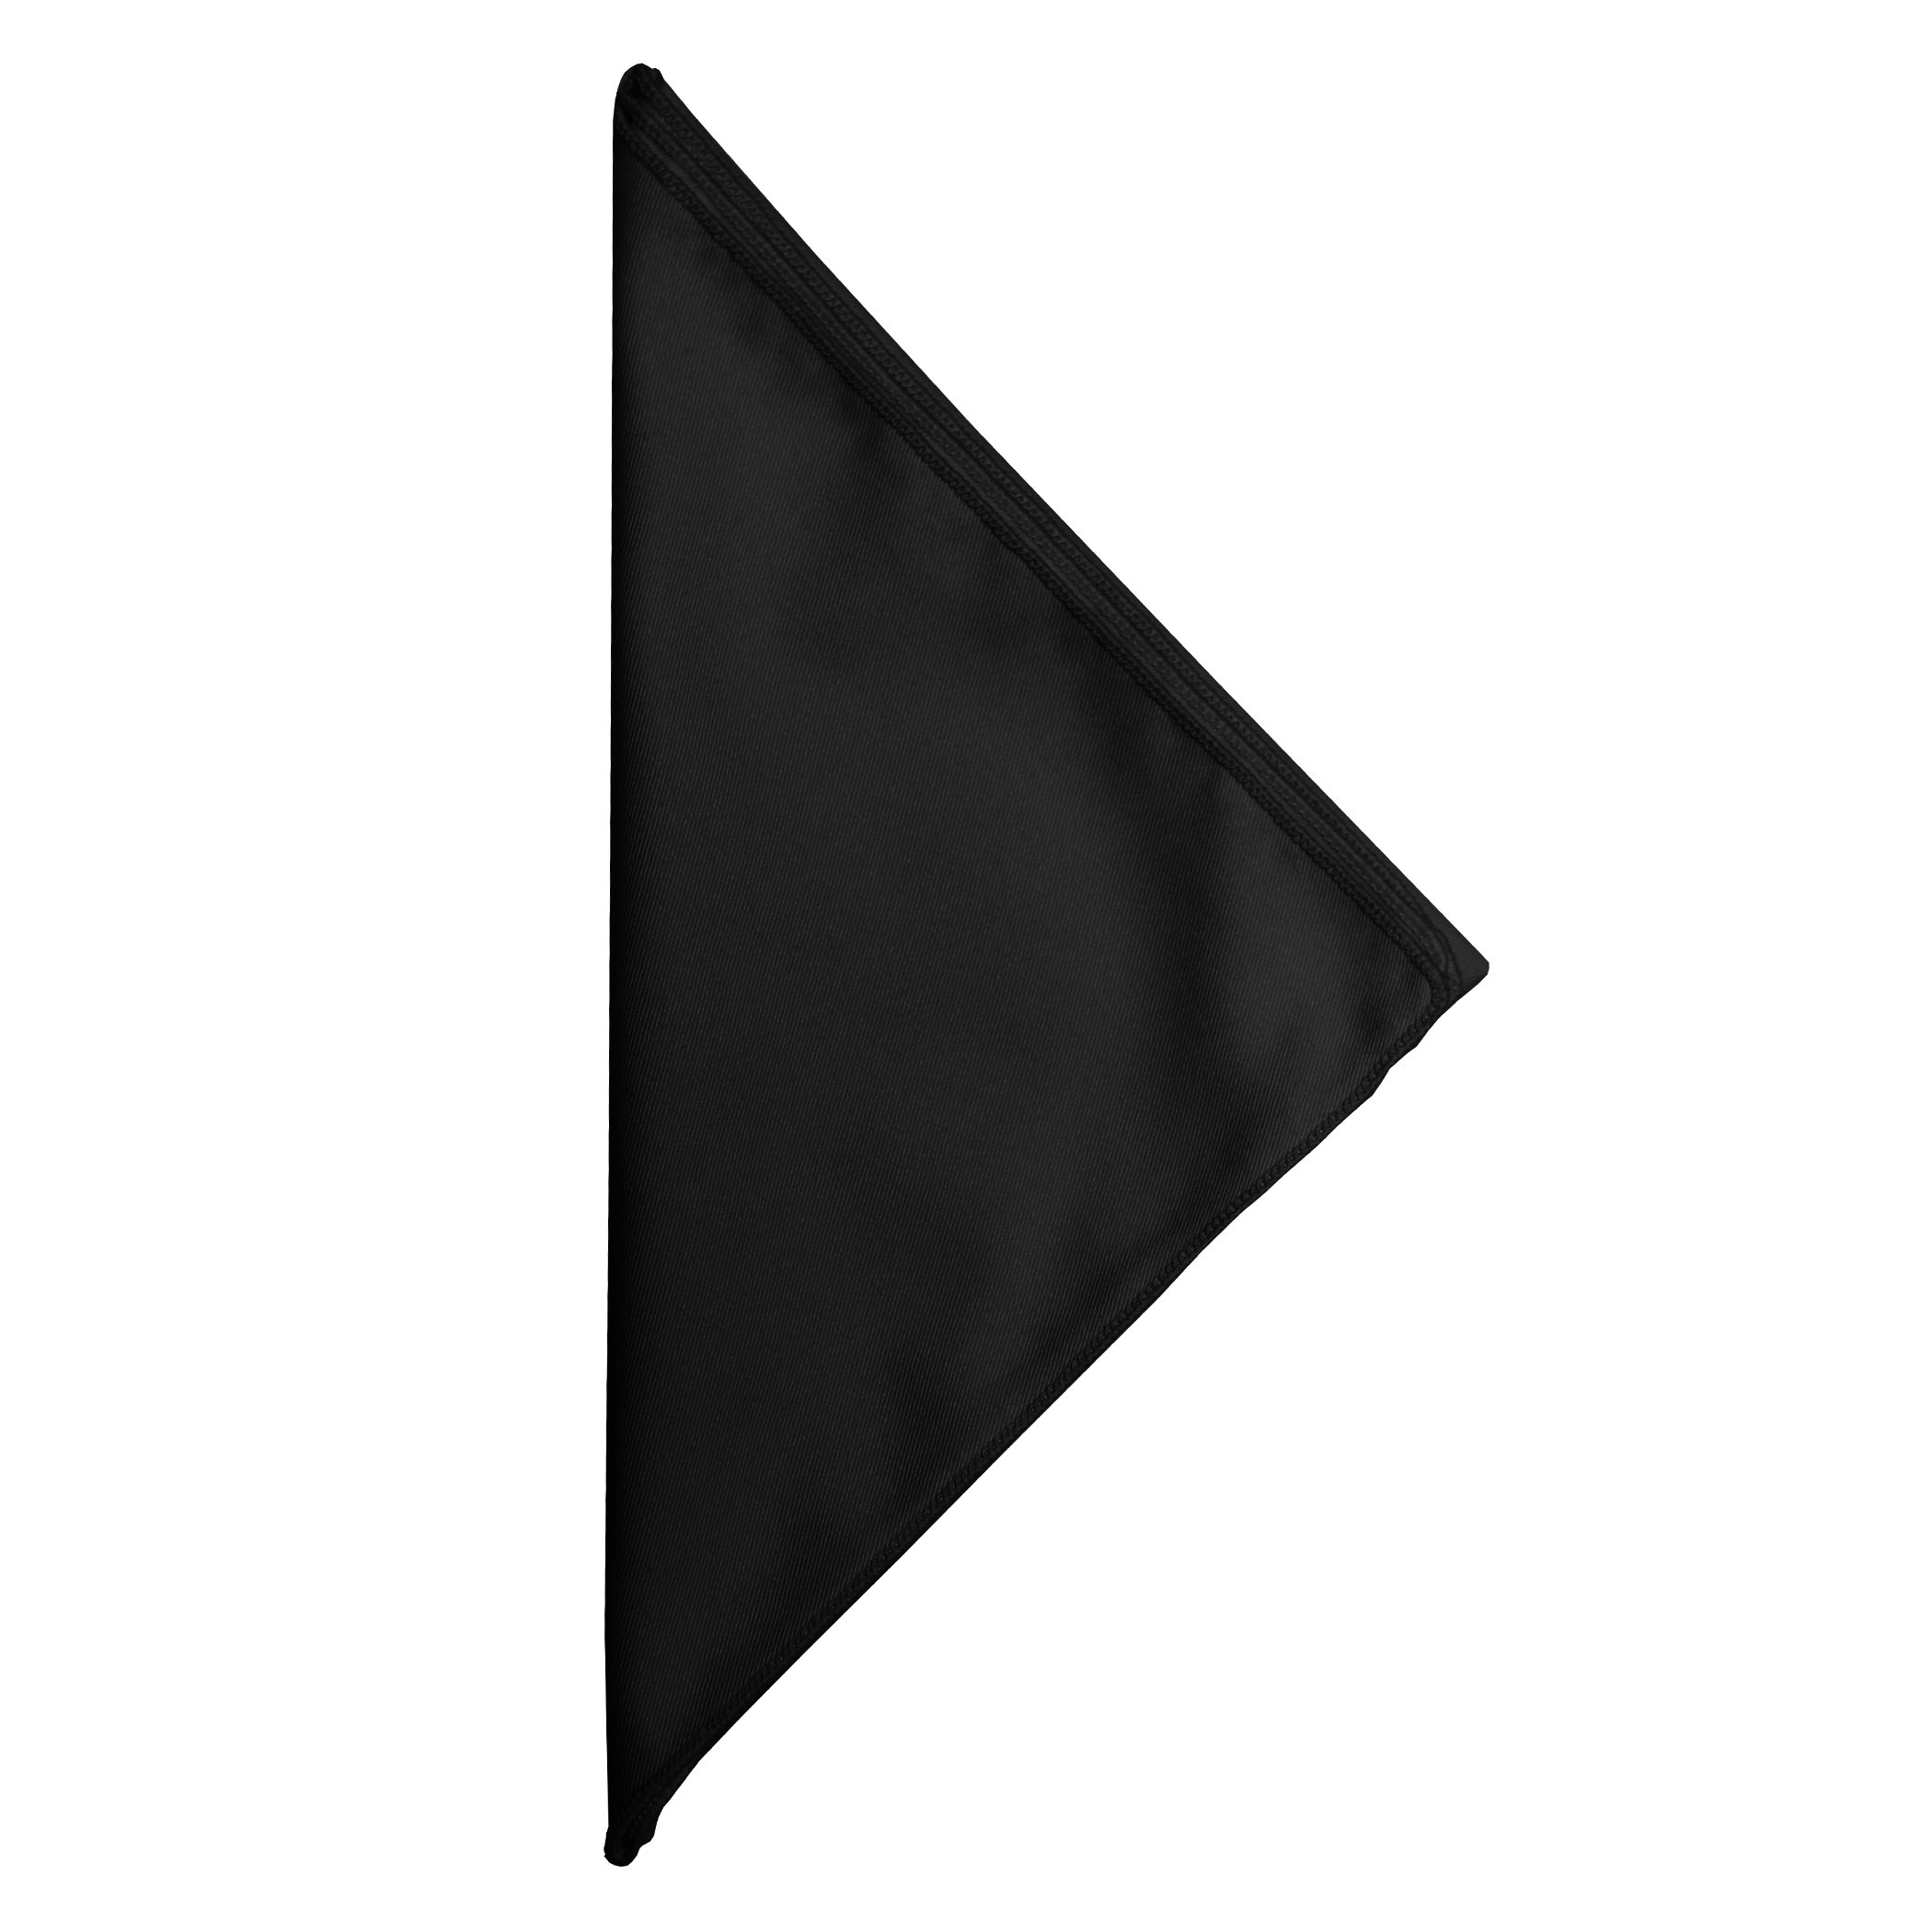 Ultimate Textile -2 Dozen- Poly-cotton Twill 10 x 10-Inch Cloth Cocktail Napkins - for Restaurant and Catering, Hotel or Home Dining use, Black